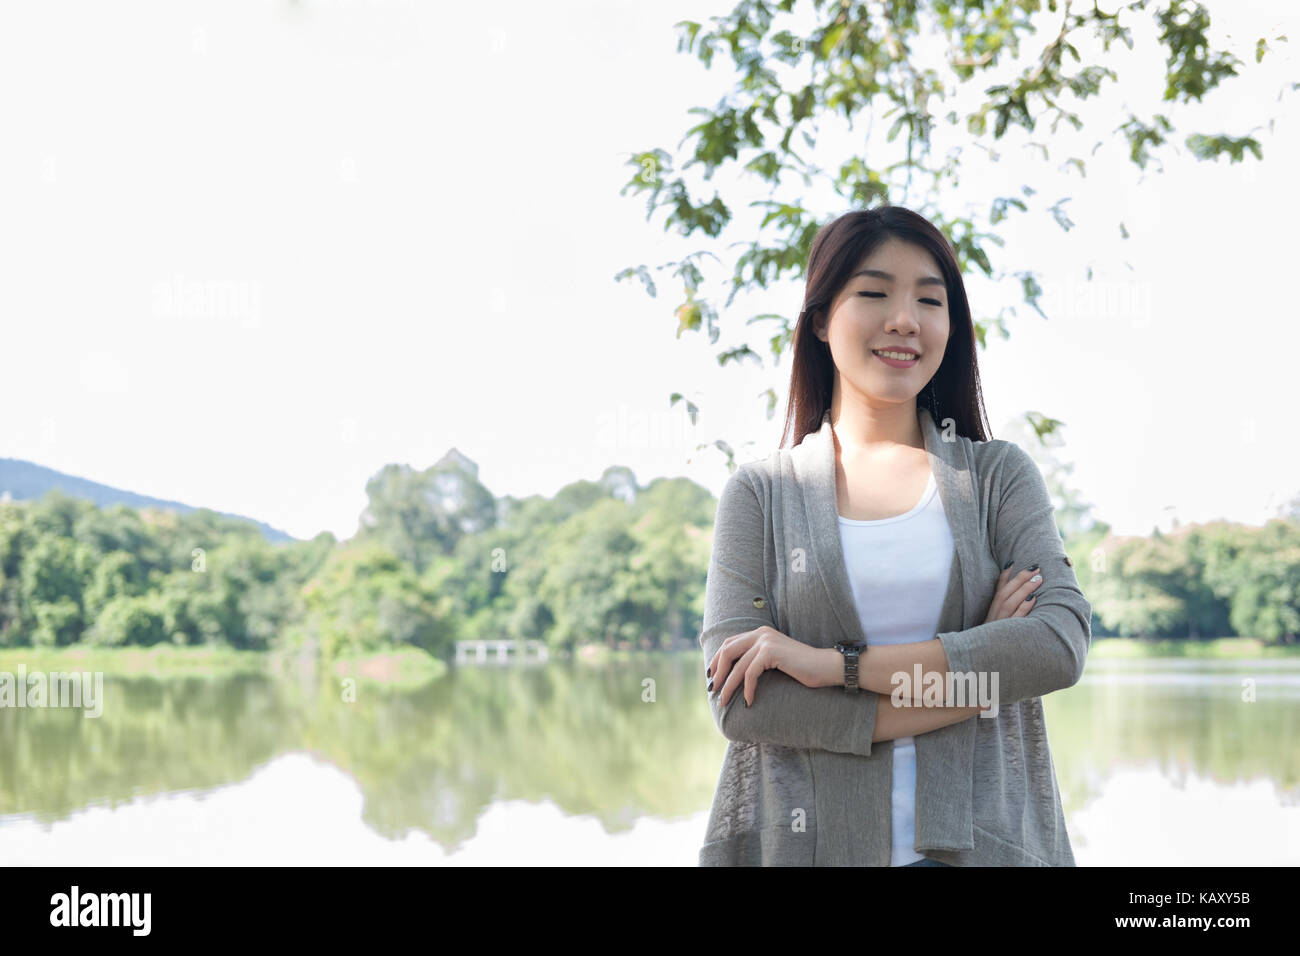 pretty asian woman portrait. young female adult with natural make-up relax in park. attractive teenager smile with - Stock Image